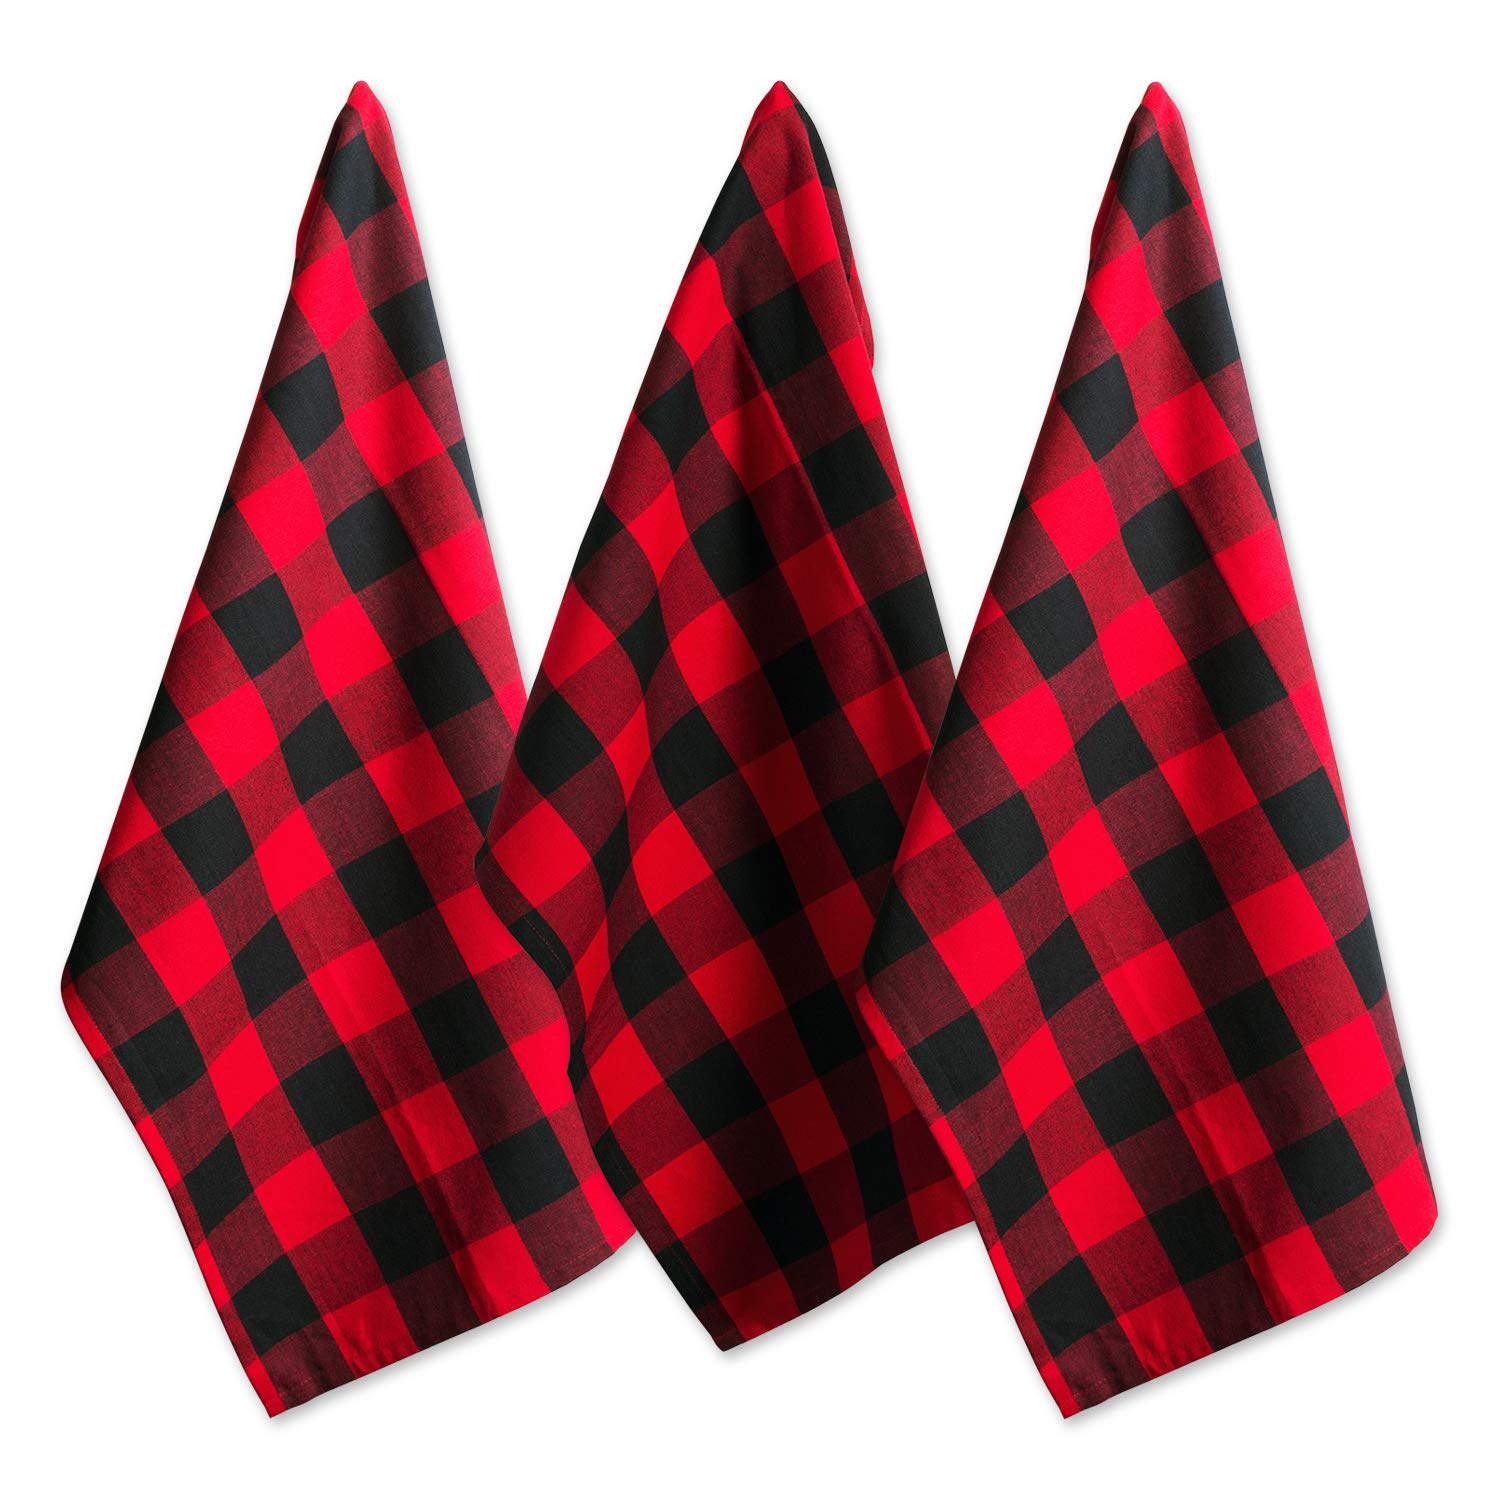 "DII Cotton Buffalo Check Plaid Dish Towels, (20x30"", Set of 3) Monogrammable Oversized Kitchen Towels for Drying, Cleaning, Cooking, & Baking - Red & Black"